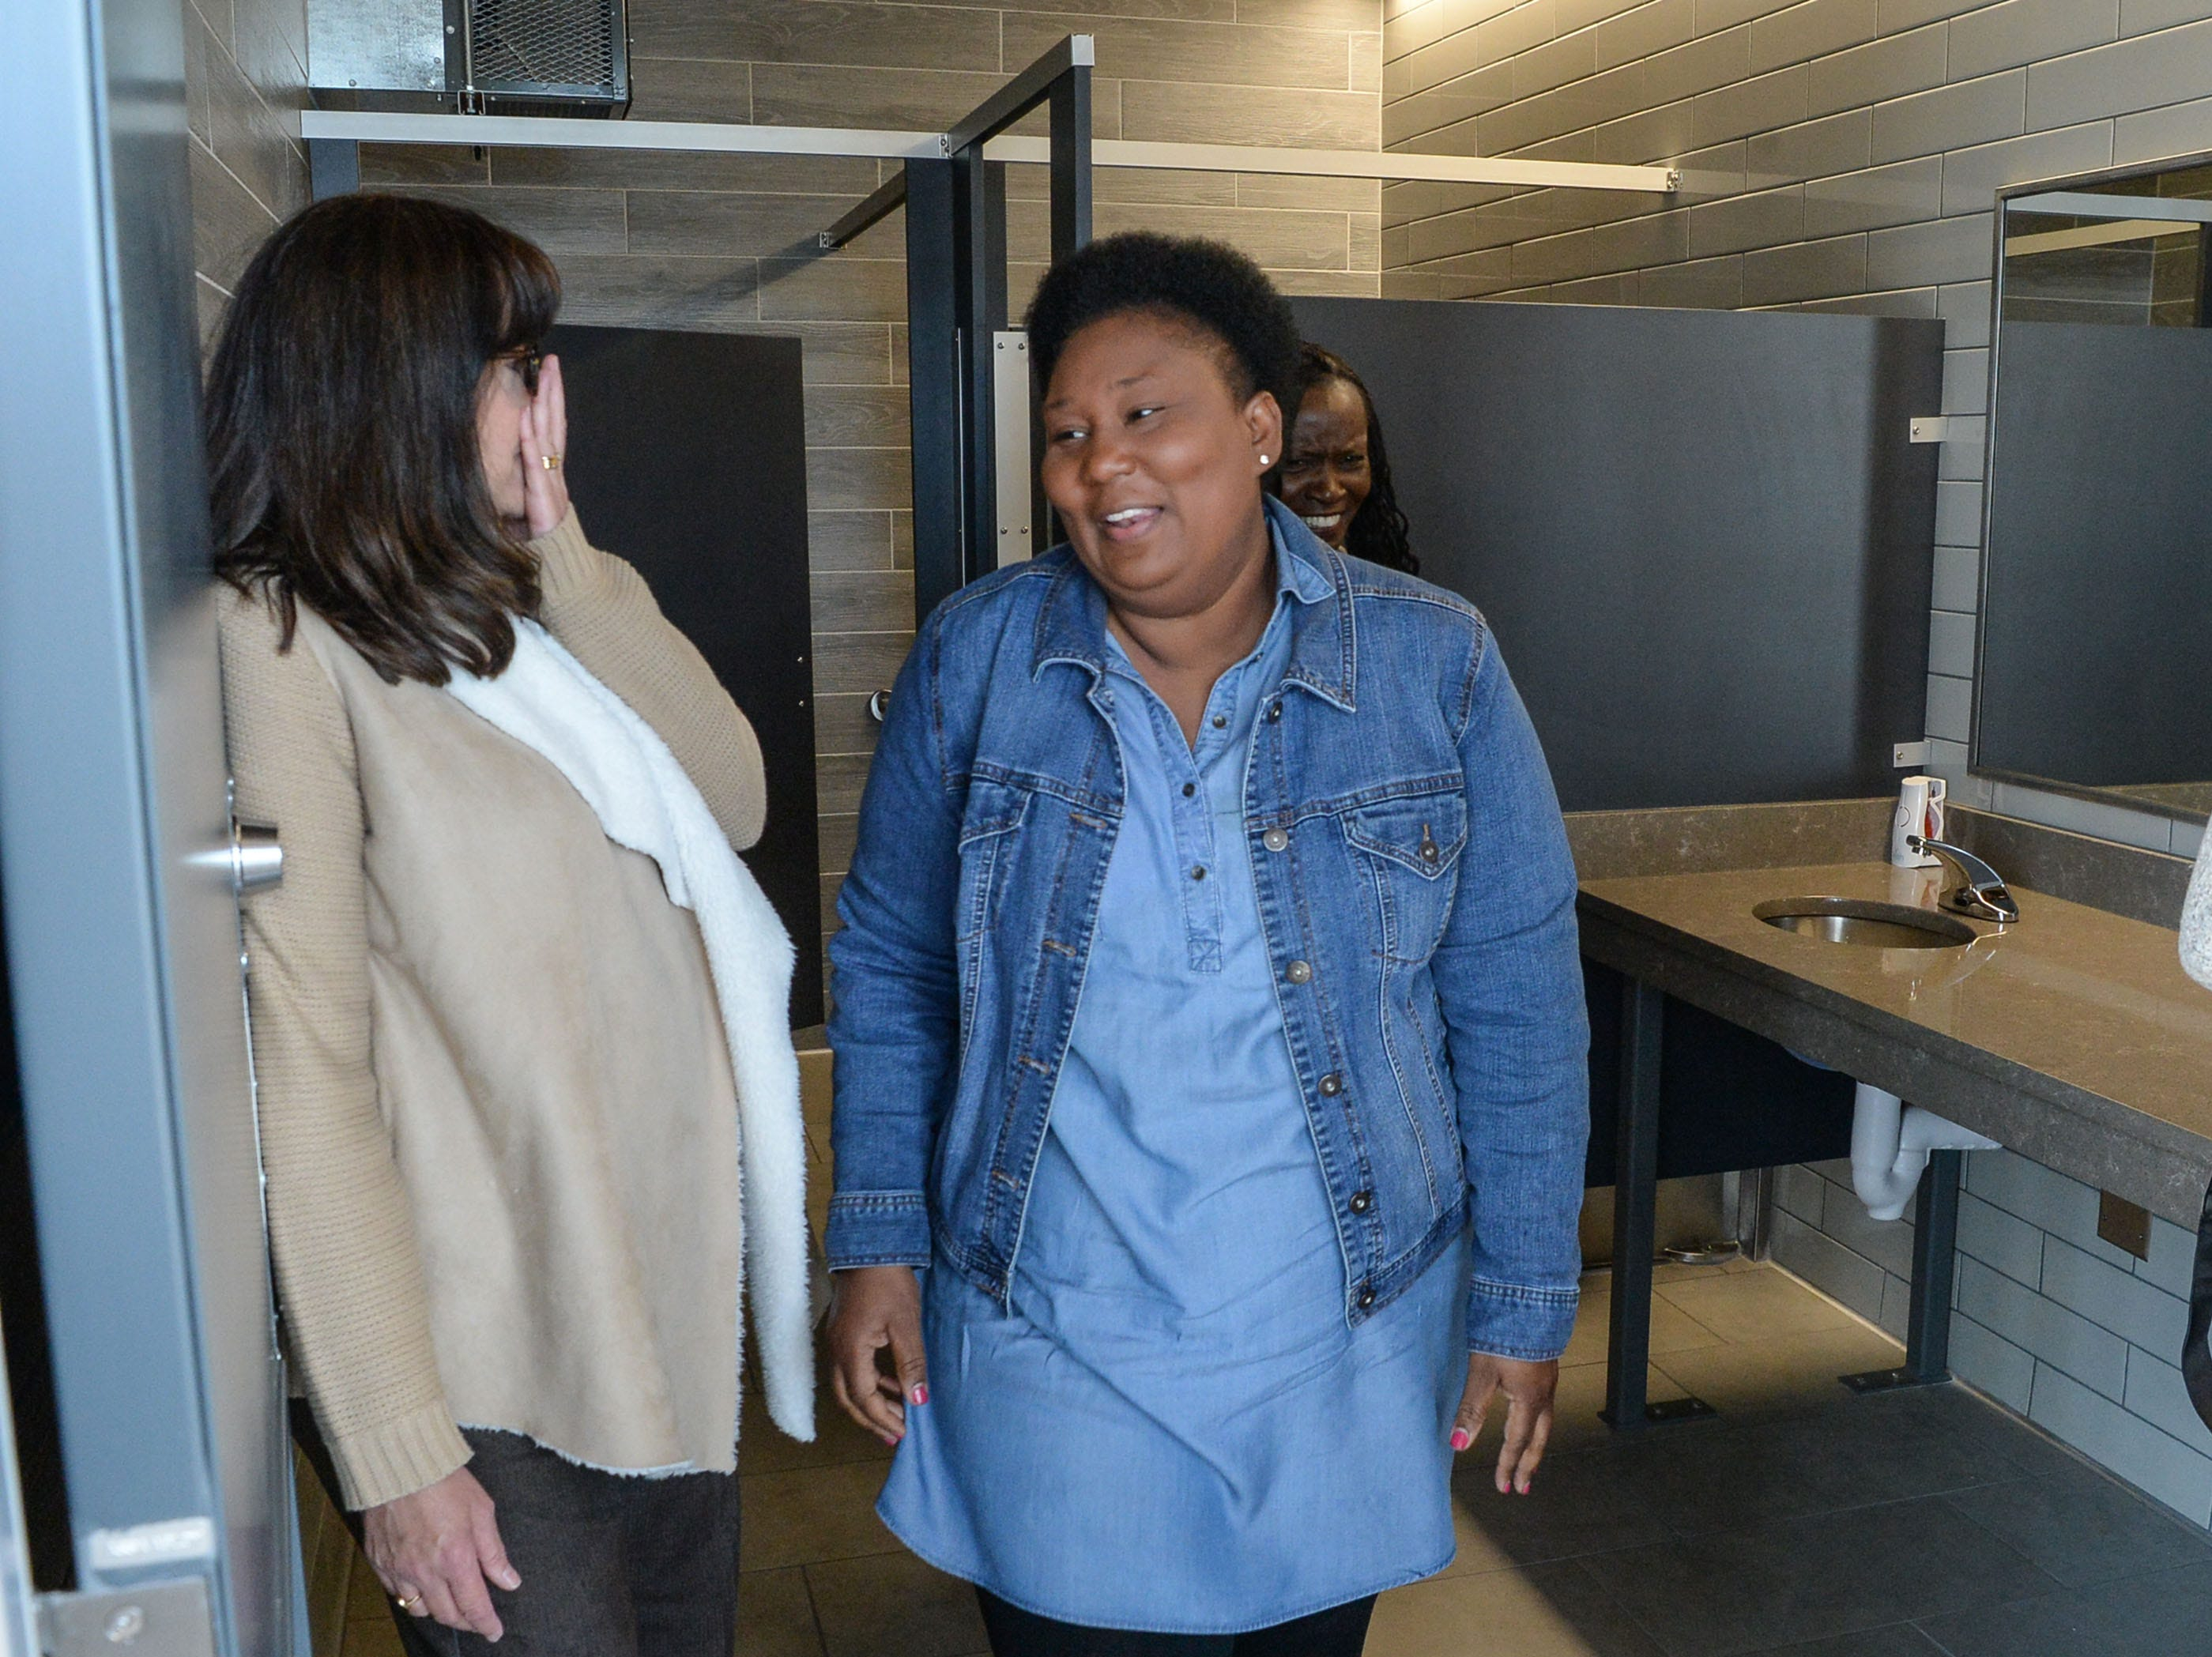 Janice Hopkins, left, of Anderson and Nannette Jackson, right, BASSMASTER tournament manager administration, check out the newly opened bathroom after the Green Pond Landing & Event Center Facilities ribbon cutting event in Anderson Tuesday.